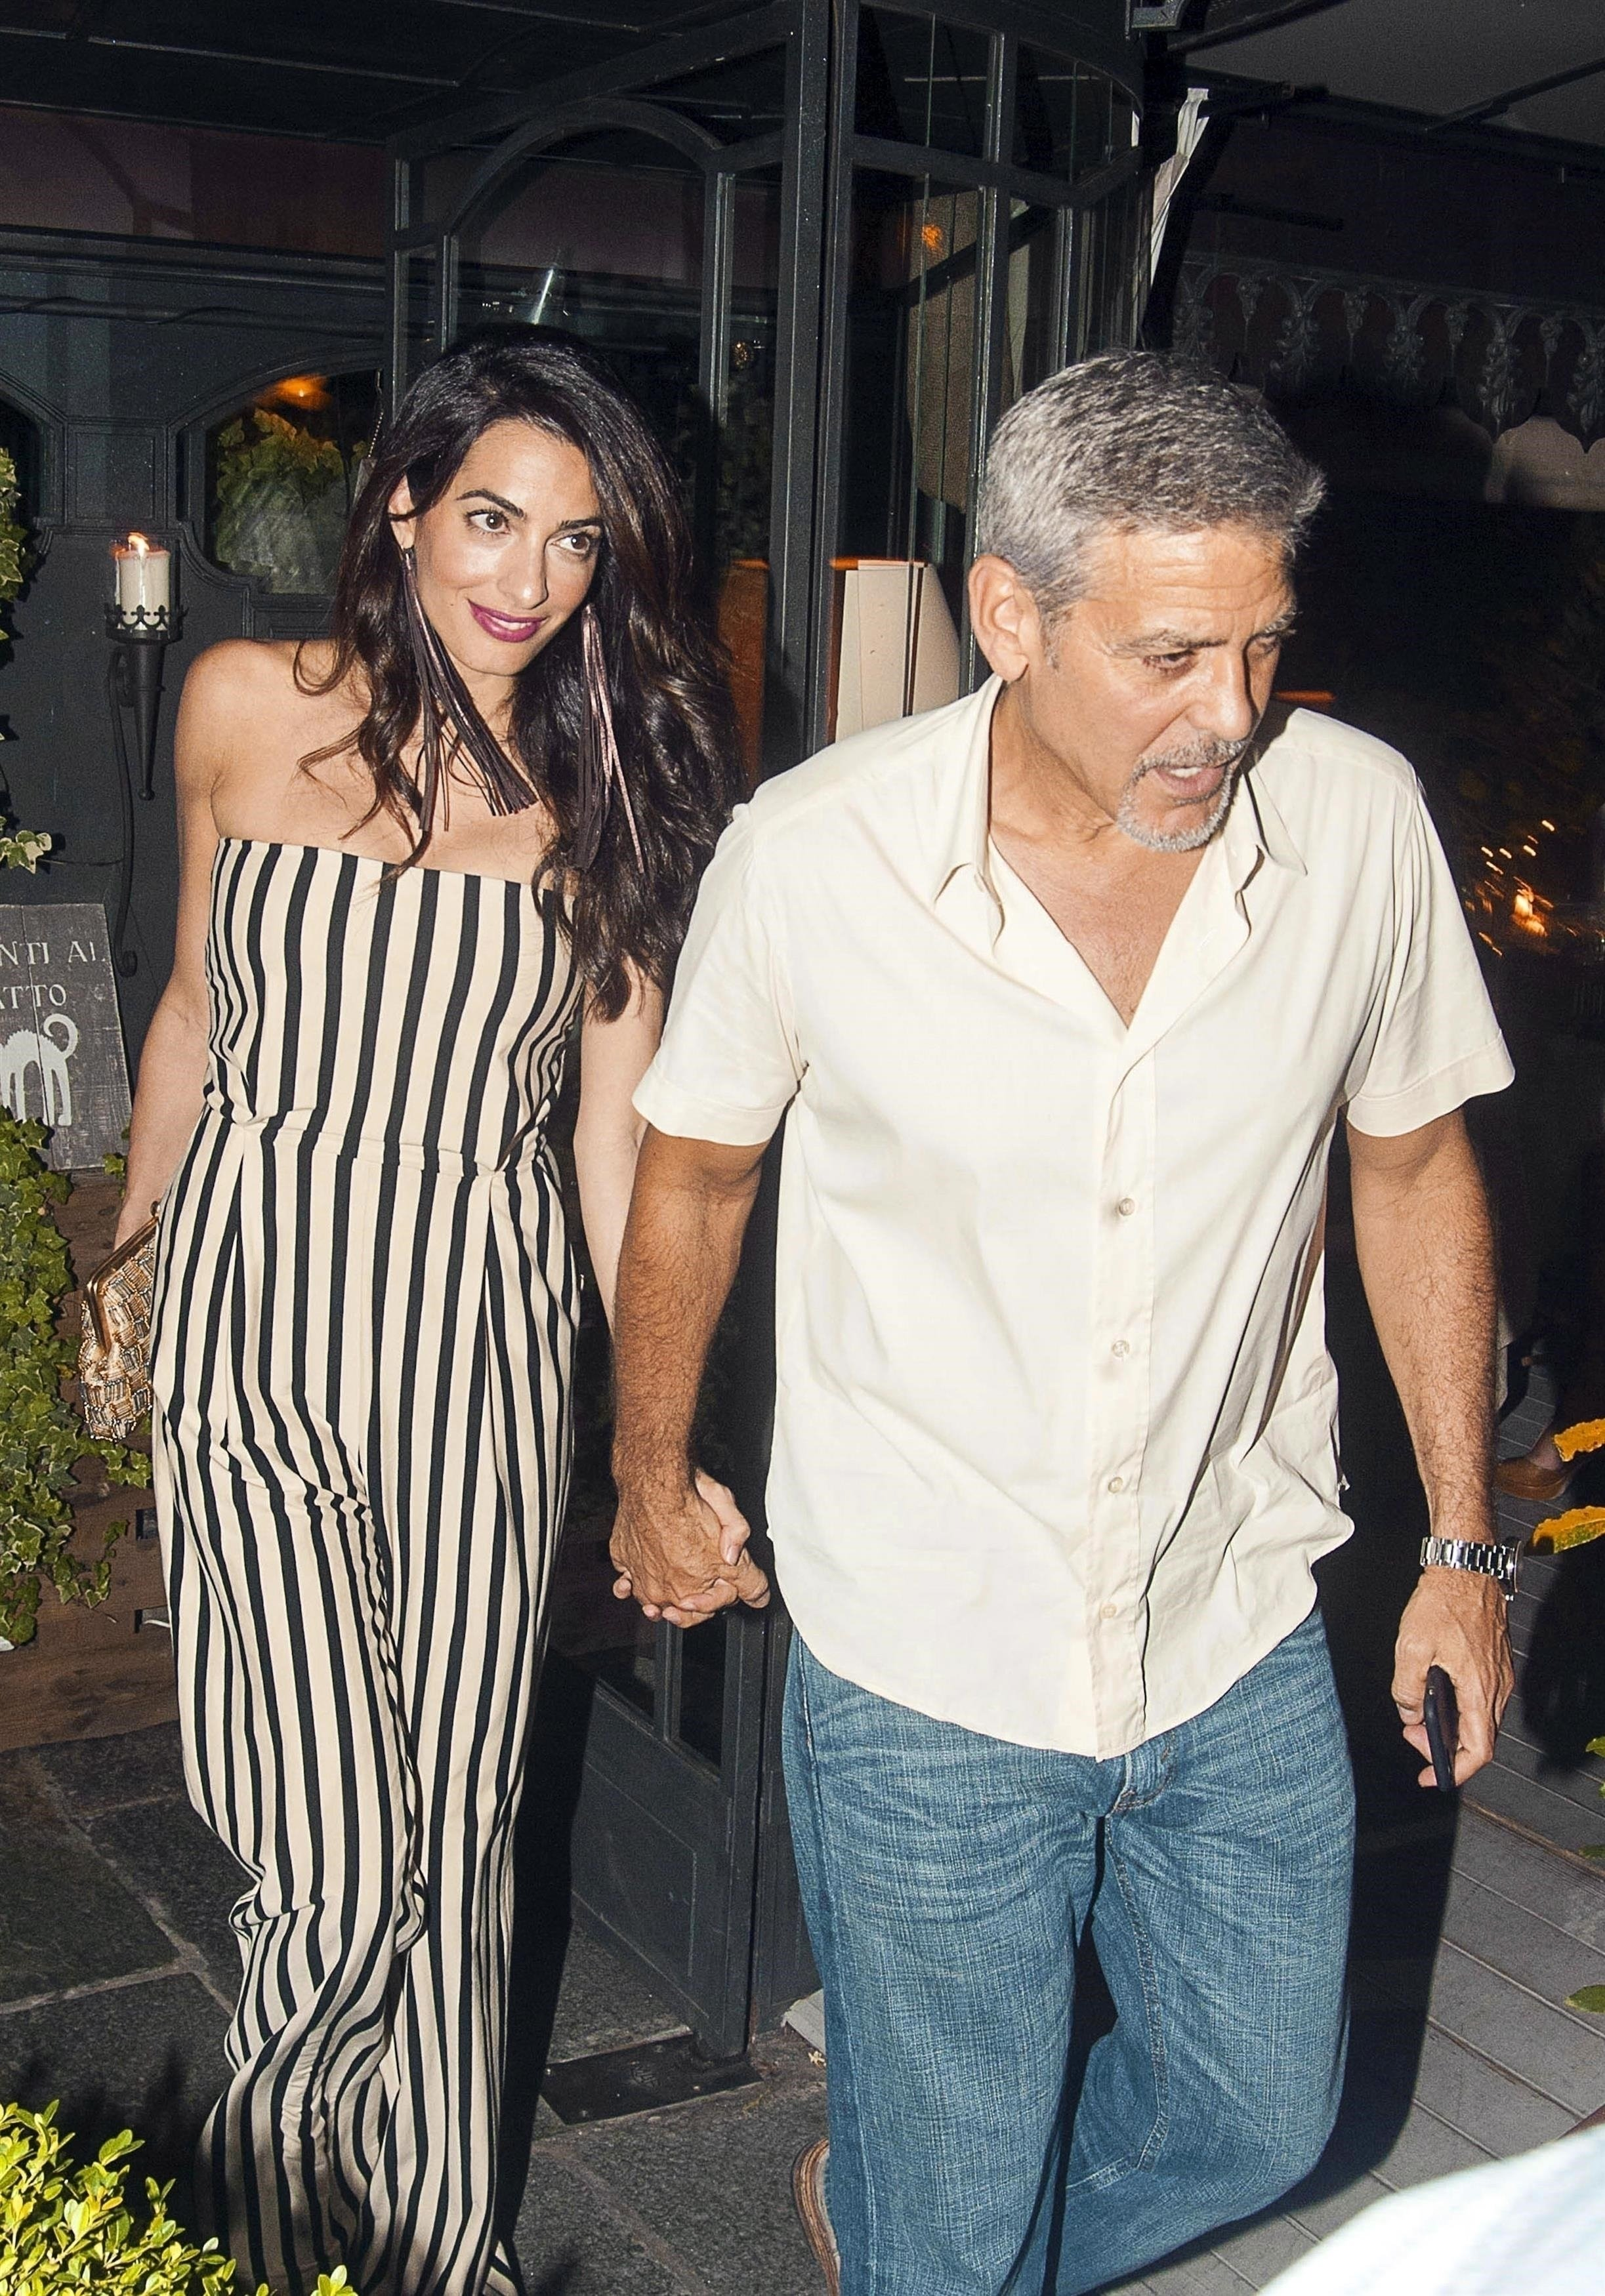 ** RIGHTS: WORLDWIDE EXCEPT IN FRANCE, GERMANY, ITALY, SPAIN, SWITZERLAND ** COMO, ITALY  - *PREMIUM-EXCLUSIVE*-*MUST CALL FOR PRICING BEFORE USAGE*-*STRICTLY NOT AVAILABLE FOR ONLINE SUBSCRIPTIONS* Hollywood actor George Clooney pictured with wife Amal Clooney as they are seen enjoying a romantic dinner along with Amal's Mother Baria at Gatto Nero Restaurant in Lake Como. *PICTURES TAKEN ON 5/08/2017*  Pictured: George and Amal Clooney  BACKGRID UK 8 AUGUST 2017   UK: +44 208 344 2007 / uksales@backgrid.com  USA: +1 310 798 9111 / usasales@backgrid.com  *UK Clients - Pictures Containing Children Please Pixelate Face Prior To Publication*, Image: 344466905, License: Rights-managed, Restrictions: , Model Release: no, Credit line: Profimedia, Xposurephotos